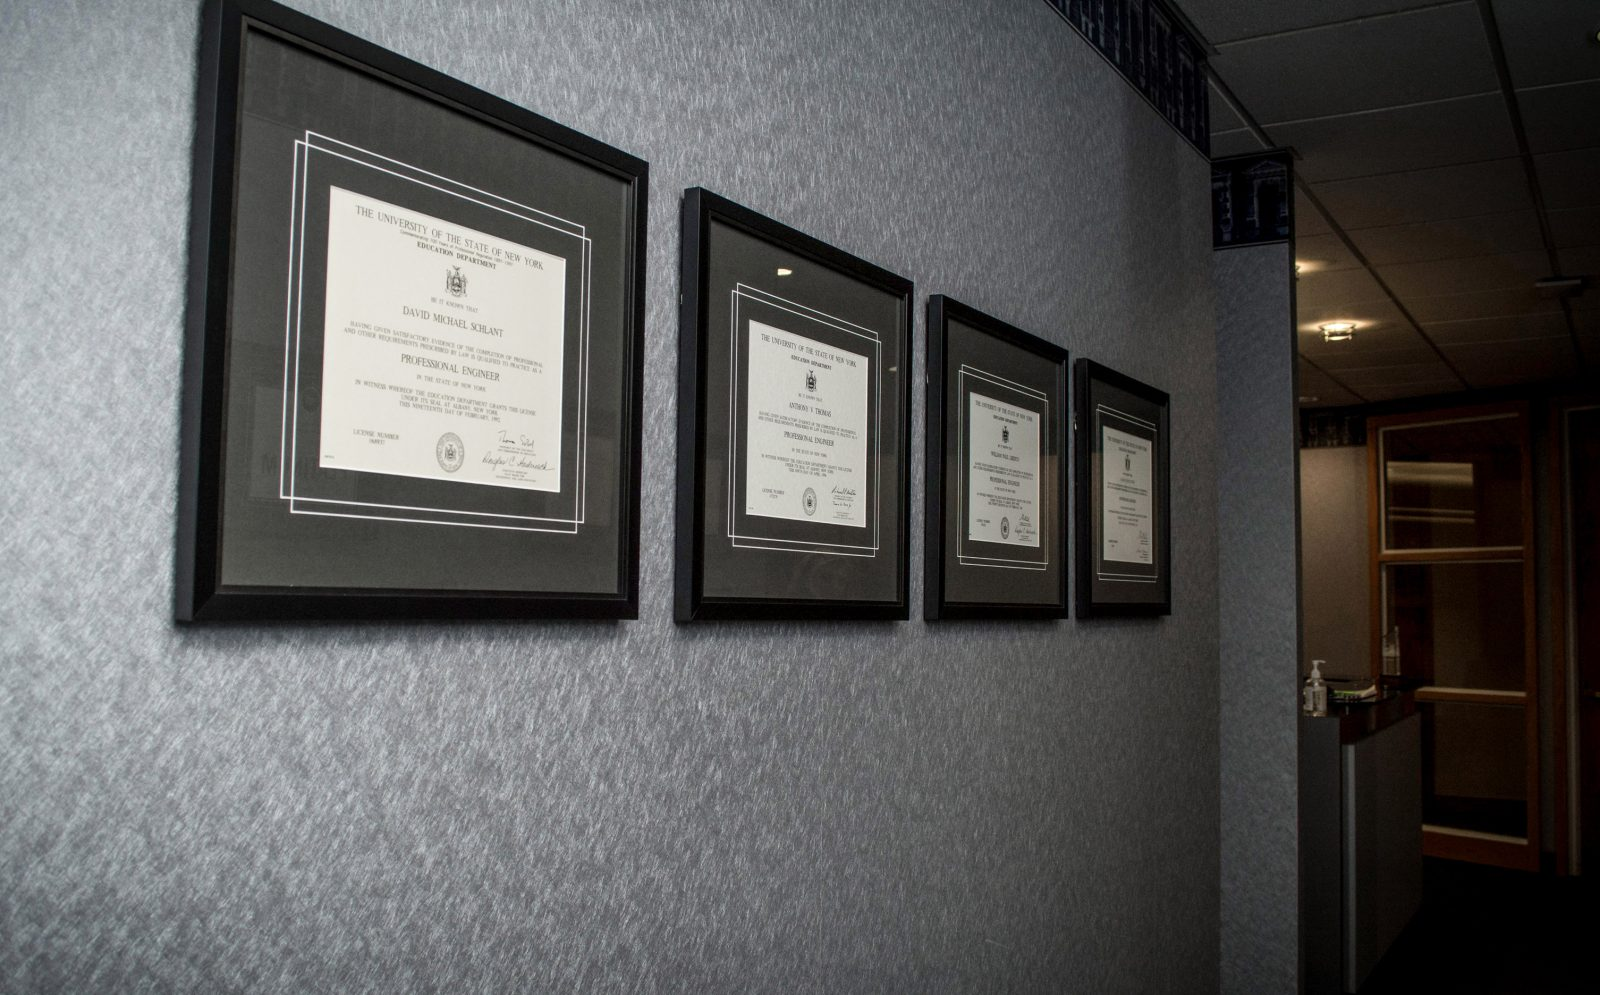 framed certifications from the state of New York